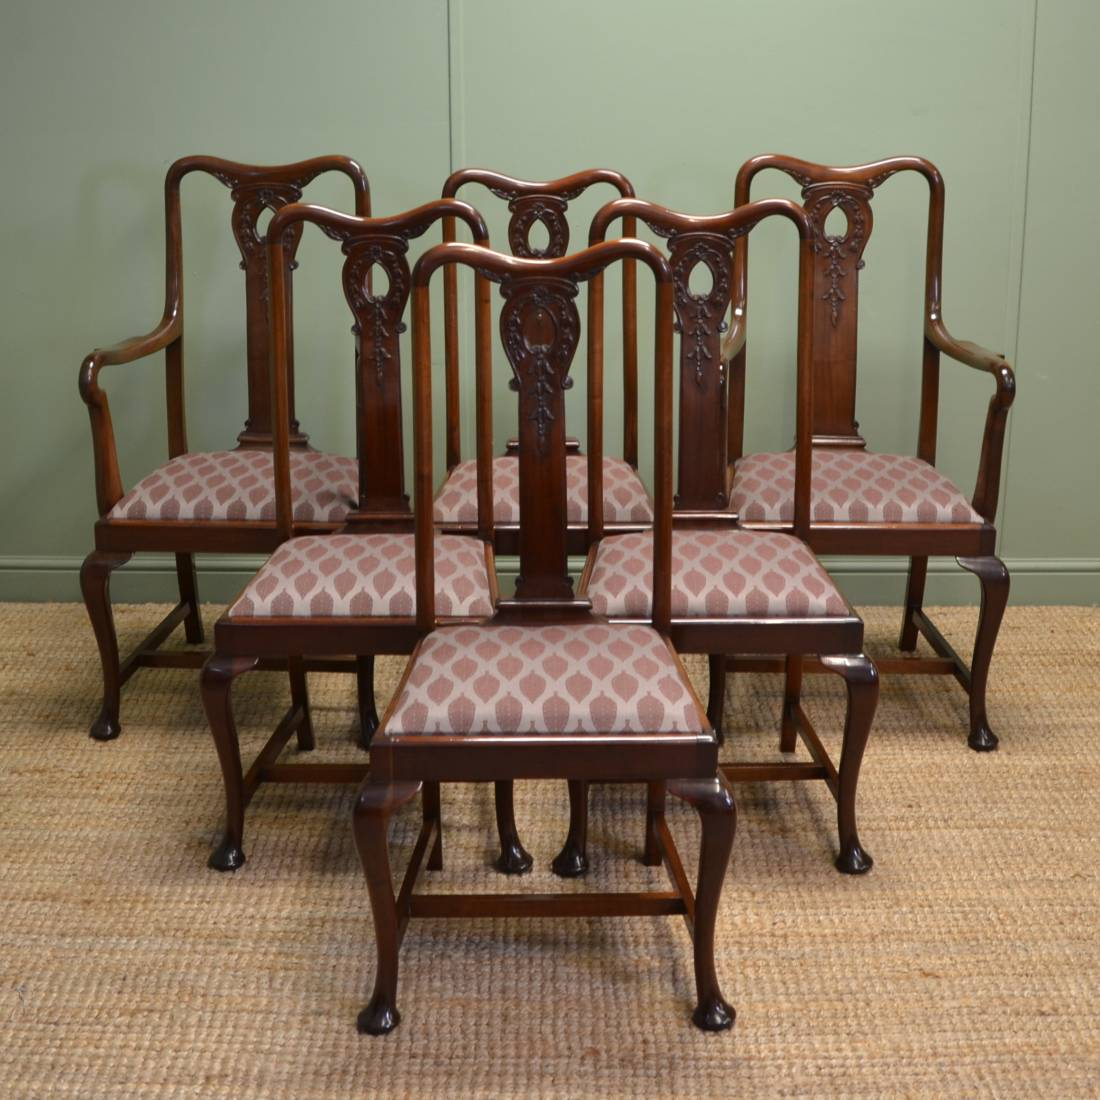 Antique Mahogany Dining Room Furniture: Stunning Set Of Six Solid Mahogany Antique Edwardian